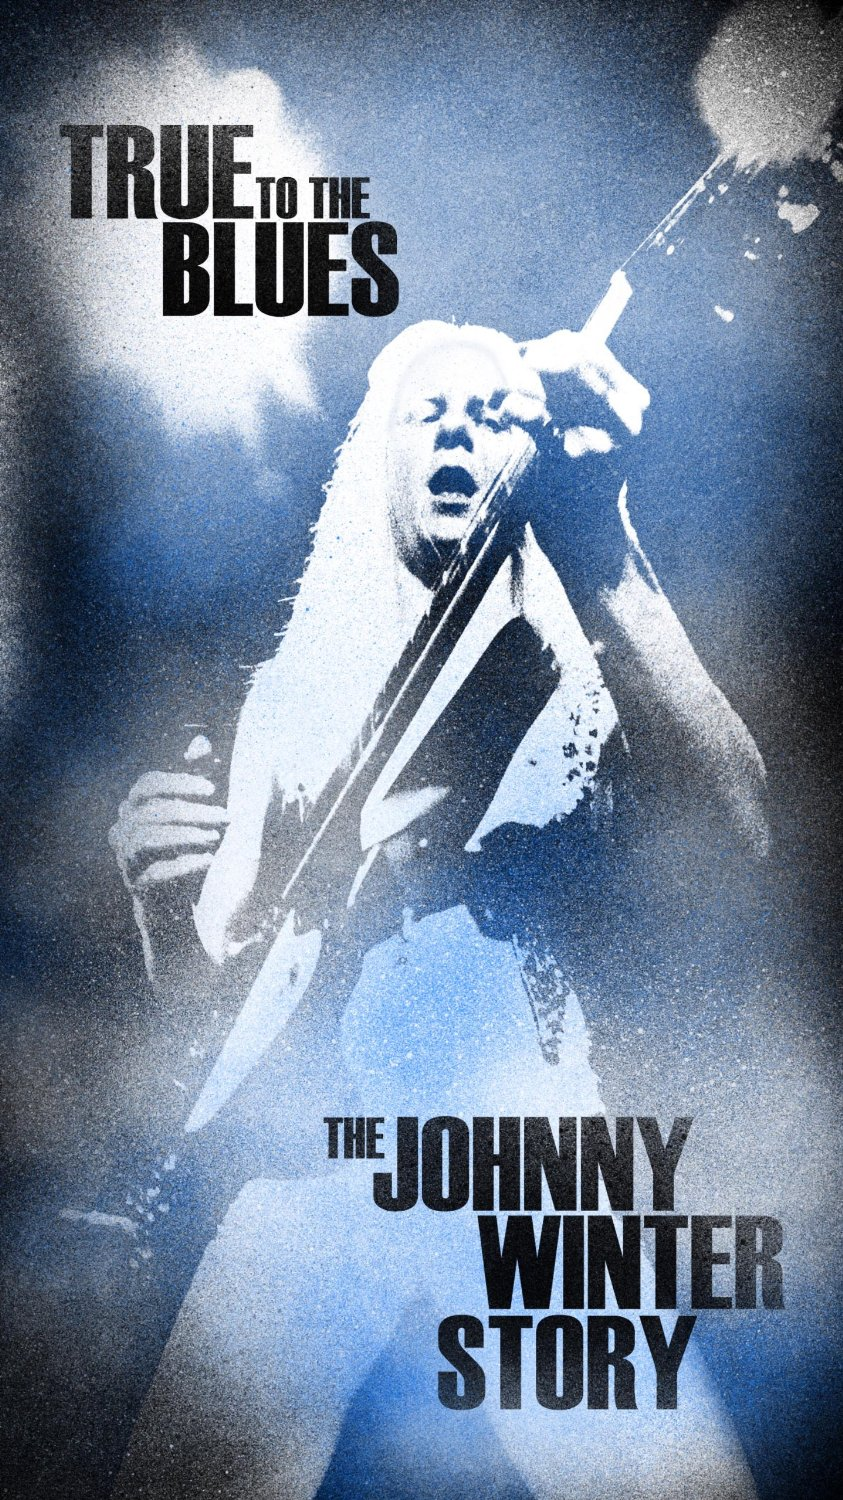 JOHNNY WINTER True To The Blues - The Johnny Winter Story